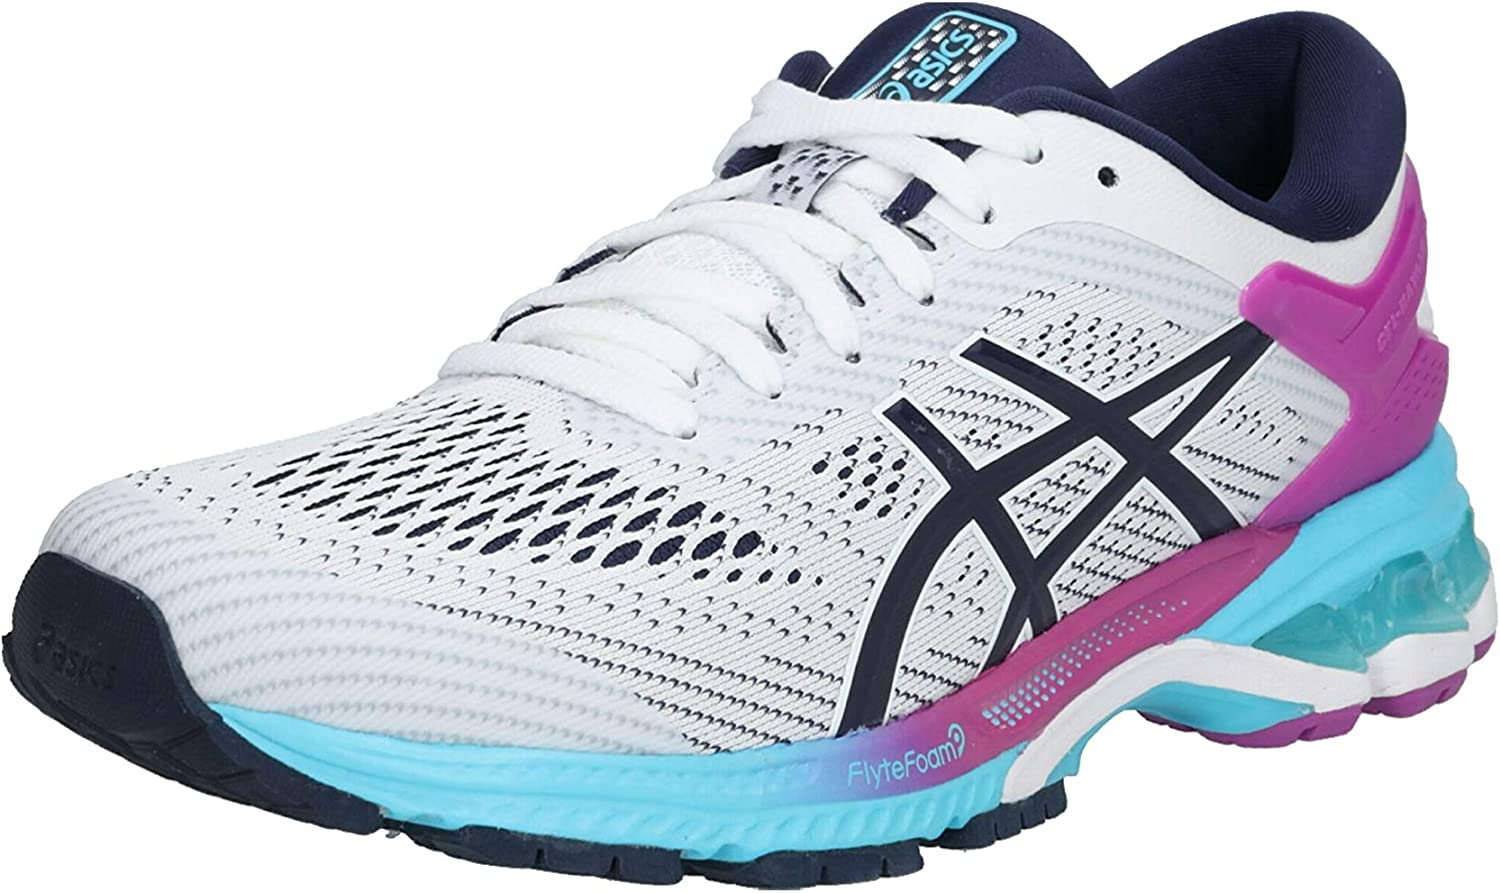 ASICS Gel-Kayano 26 Womens Zapatillas para Correr - AW19: Amazon.es: Zapatos y complementos